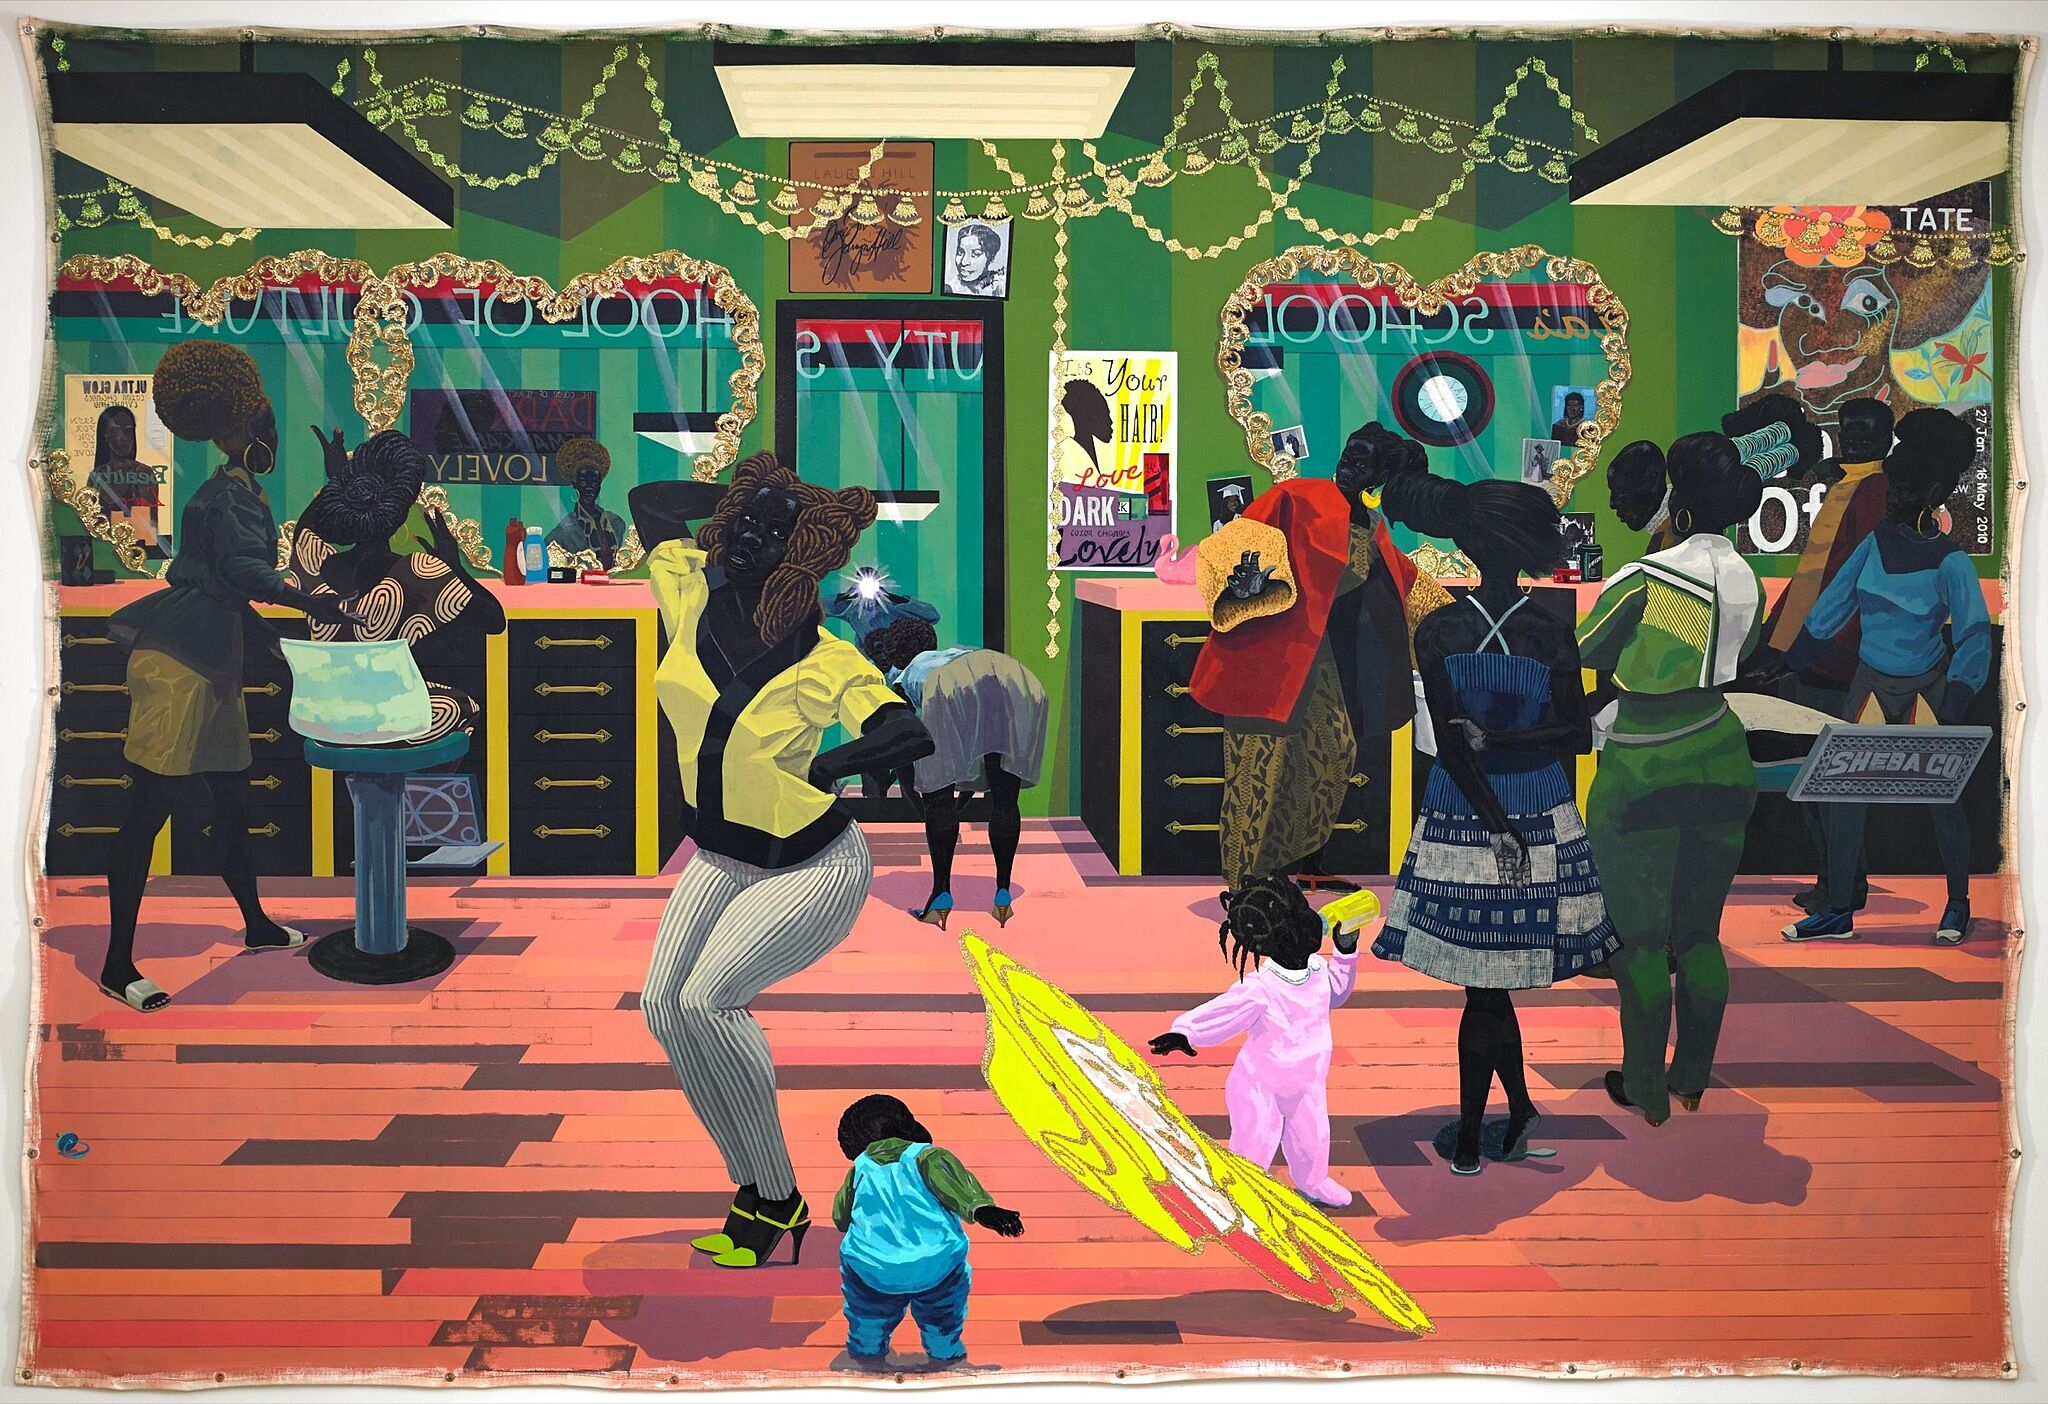 A painting of a barbershop full of people.